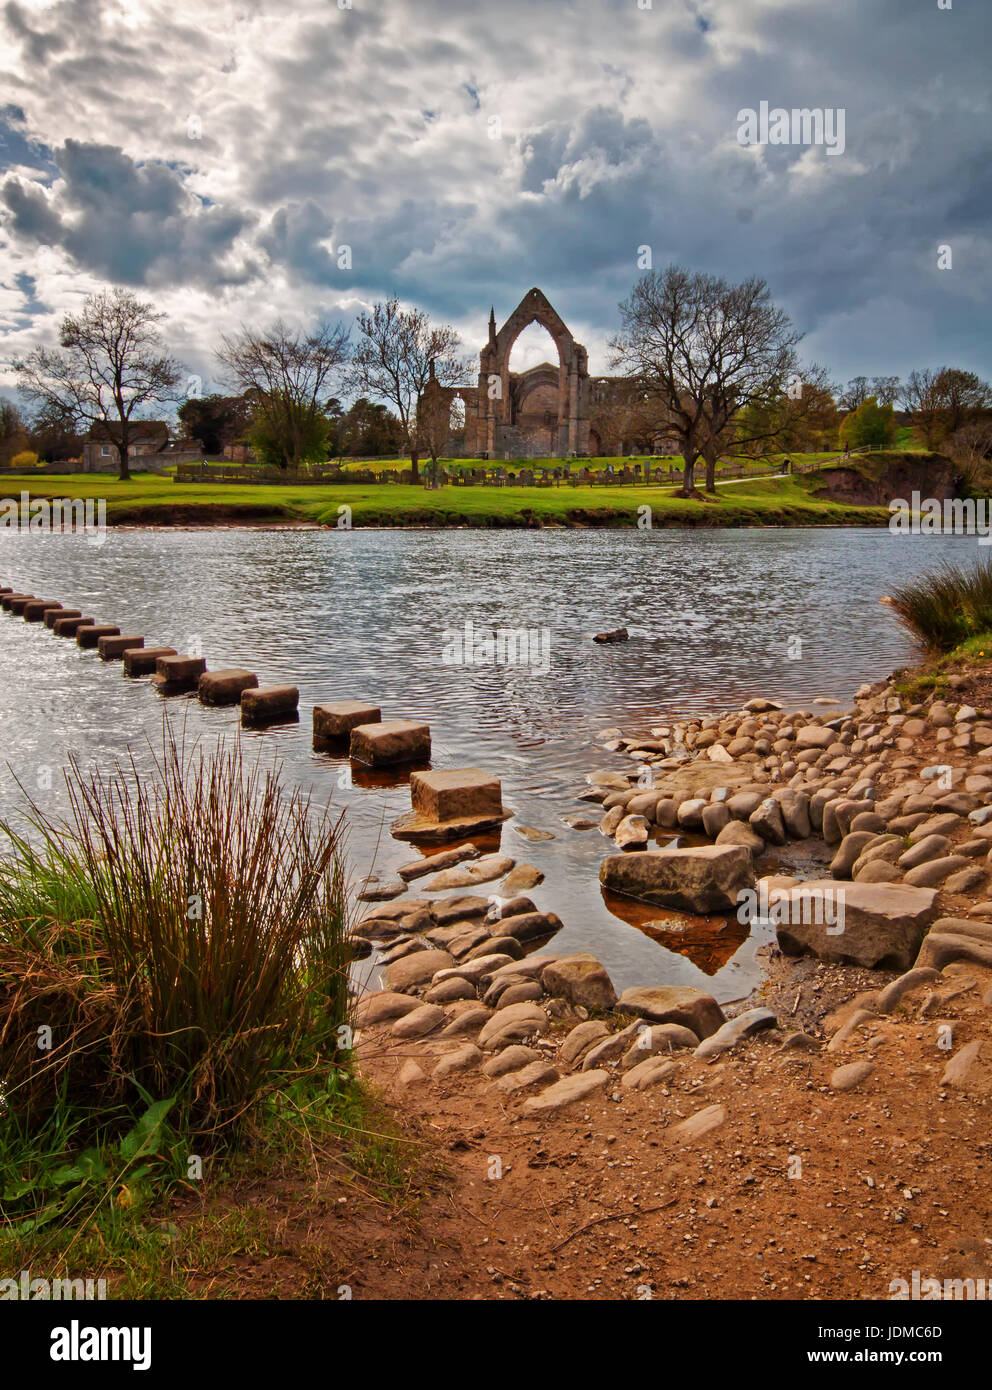 Looking across the River Wharfe at Bolton Abbey ruins - Stock Image